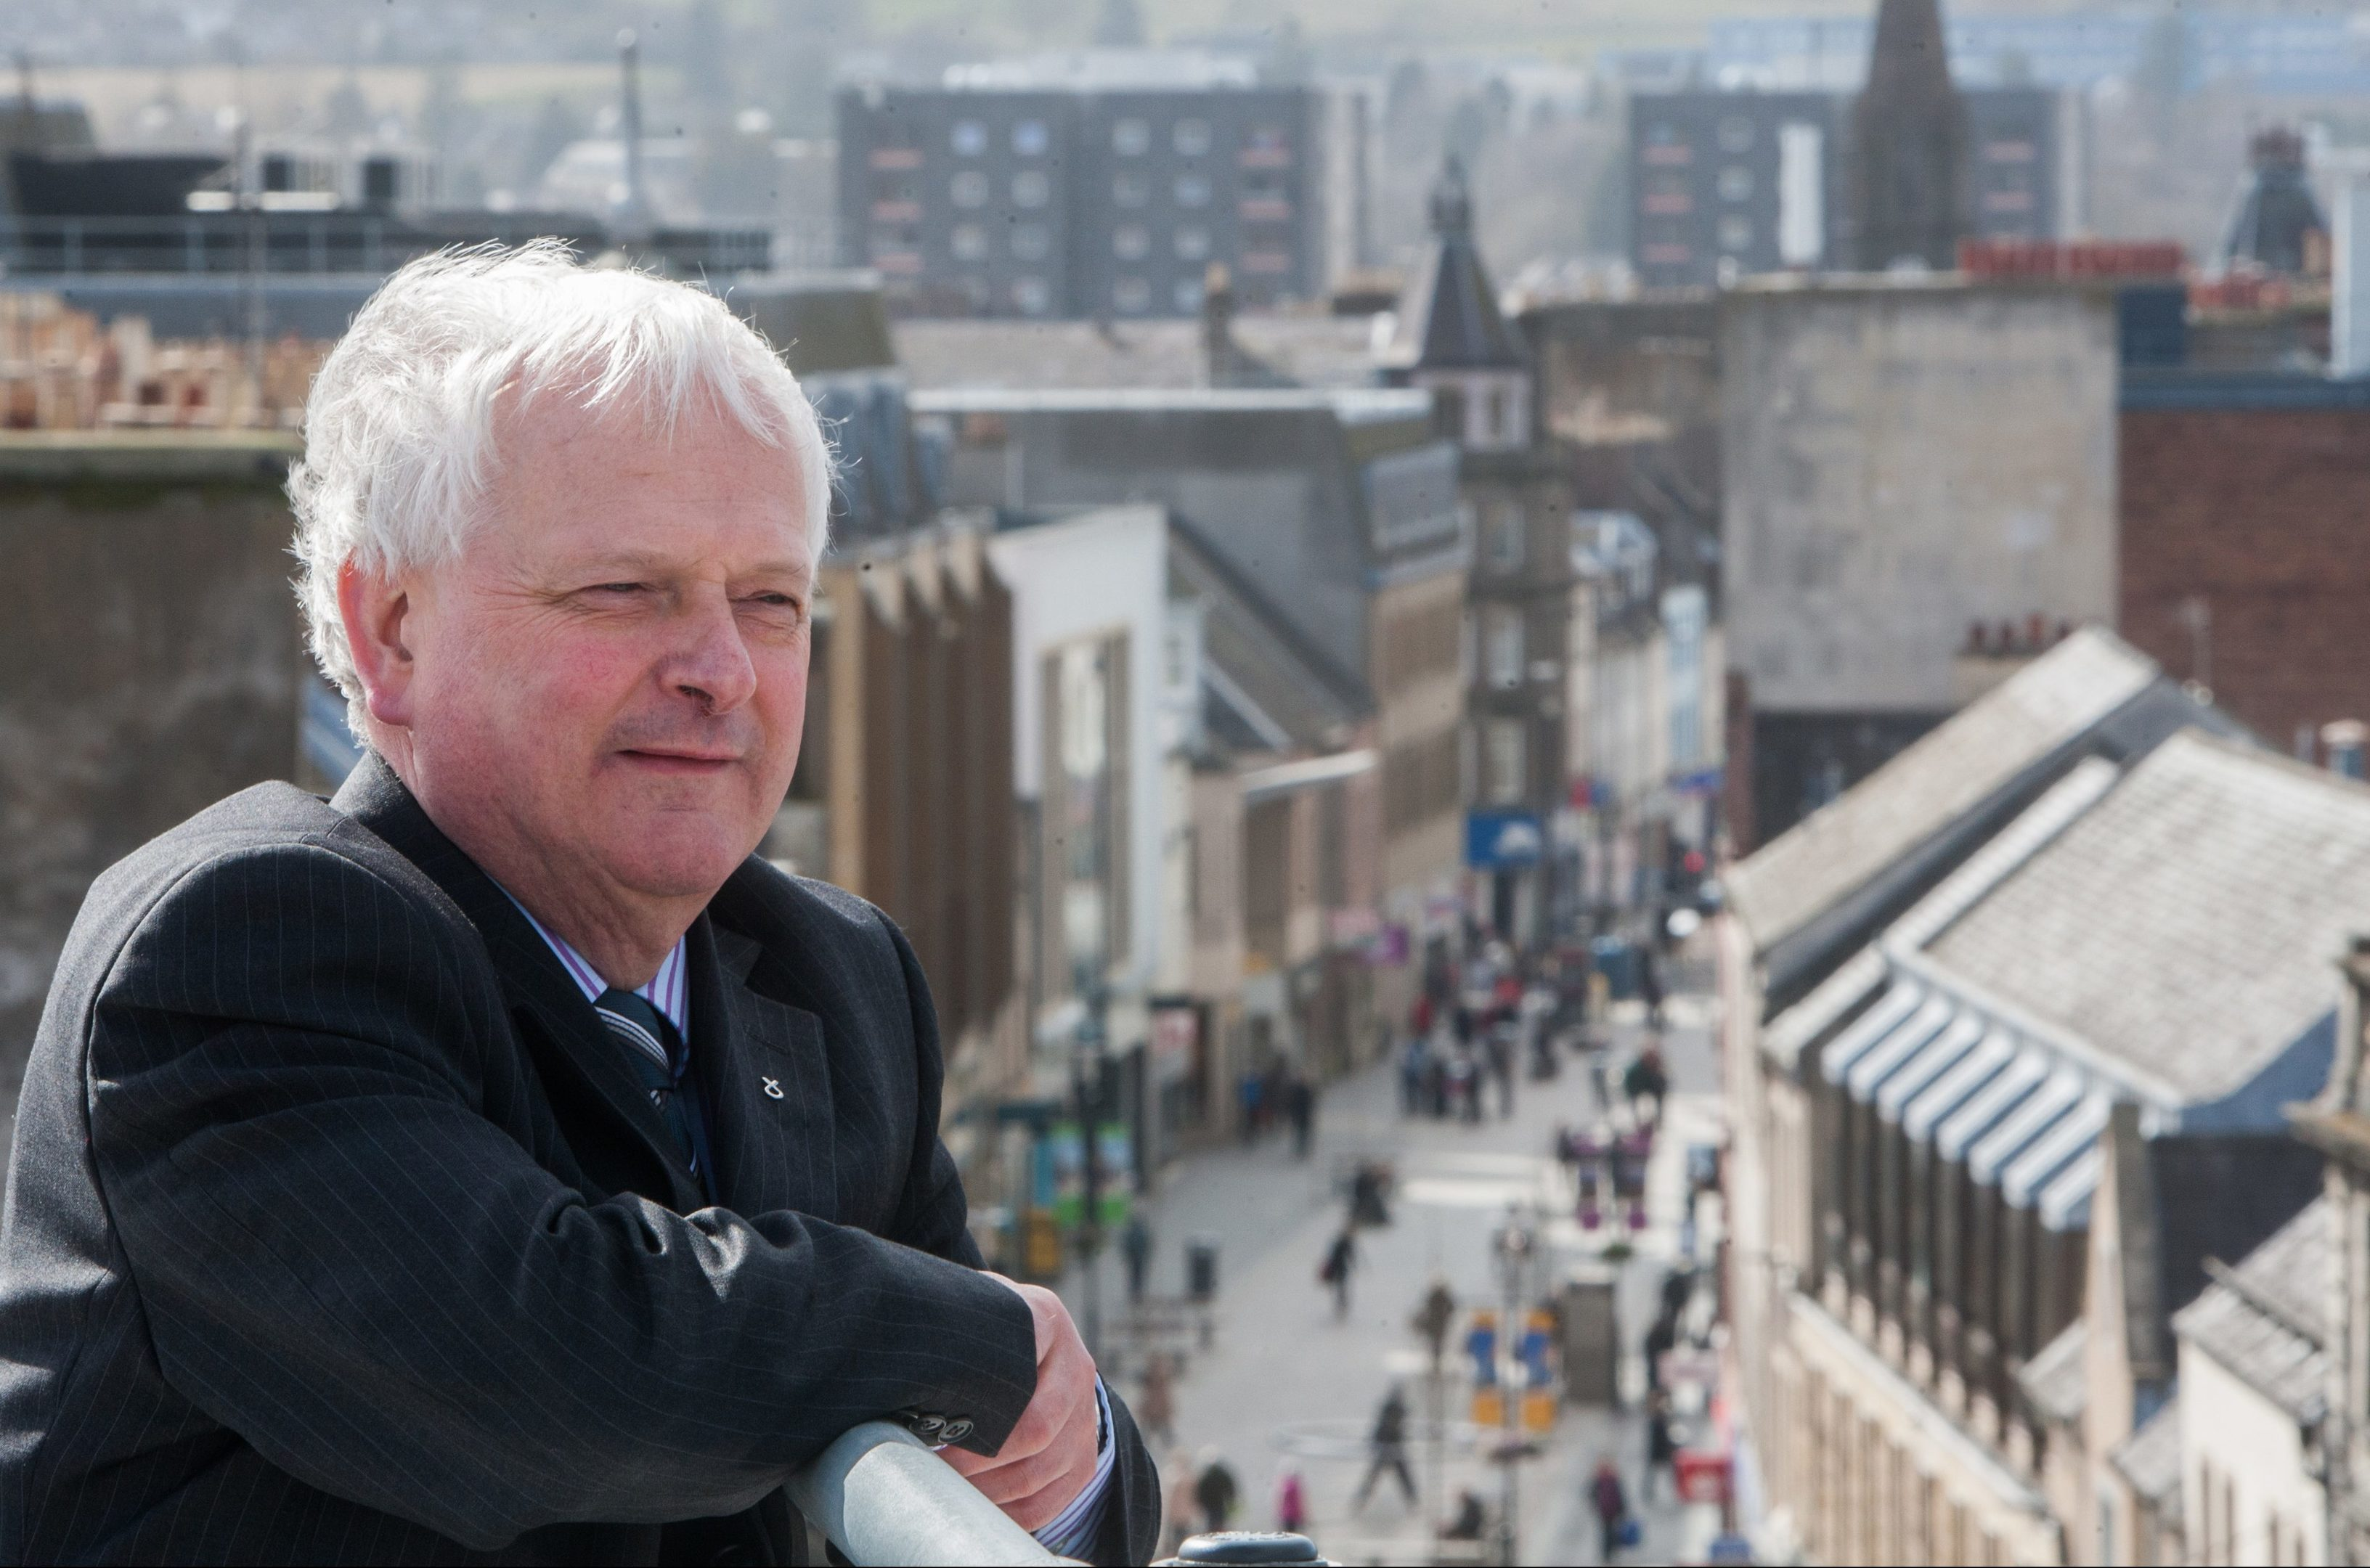 Councillor Ian  Miller with Perth High Street in the background.